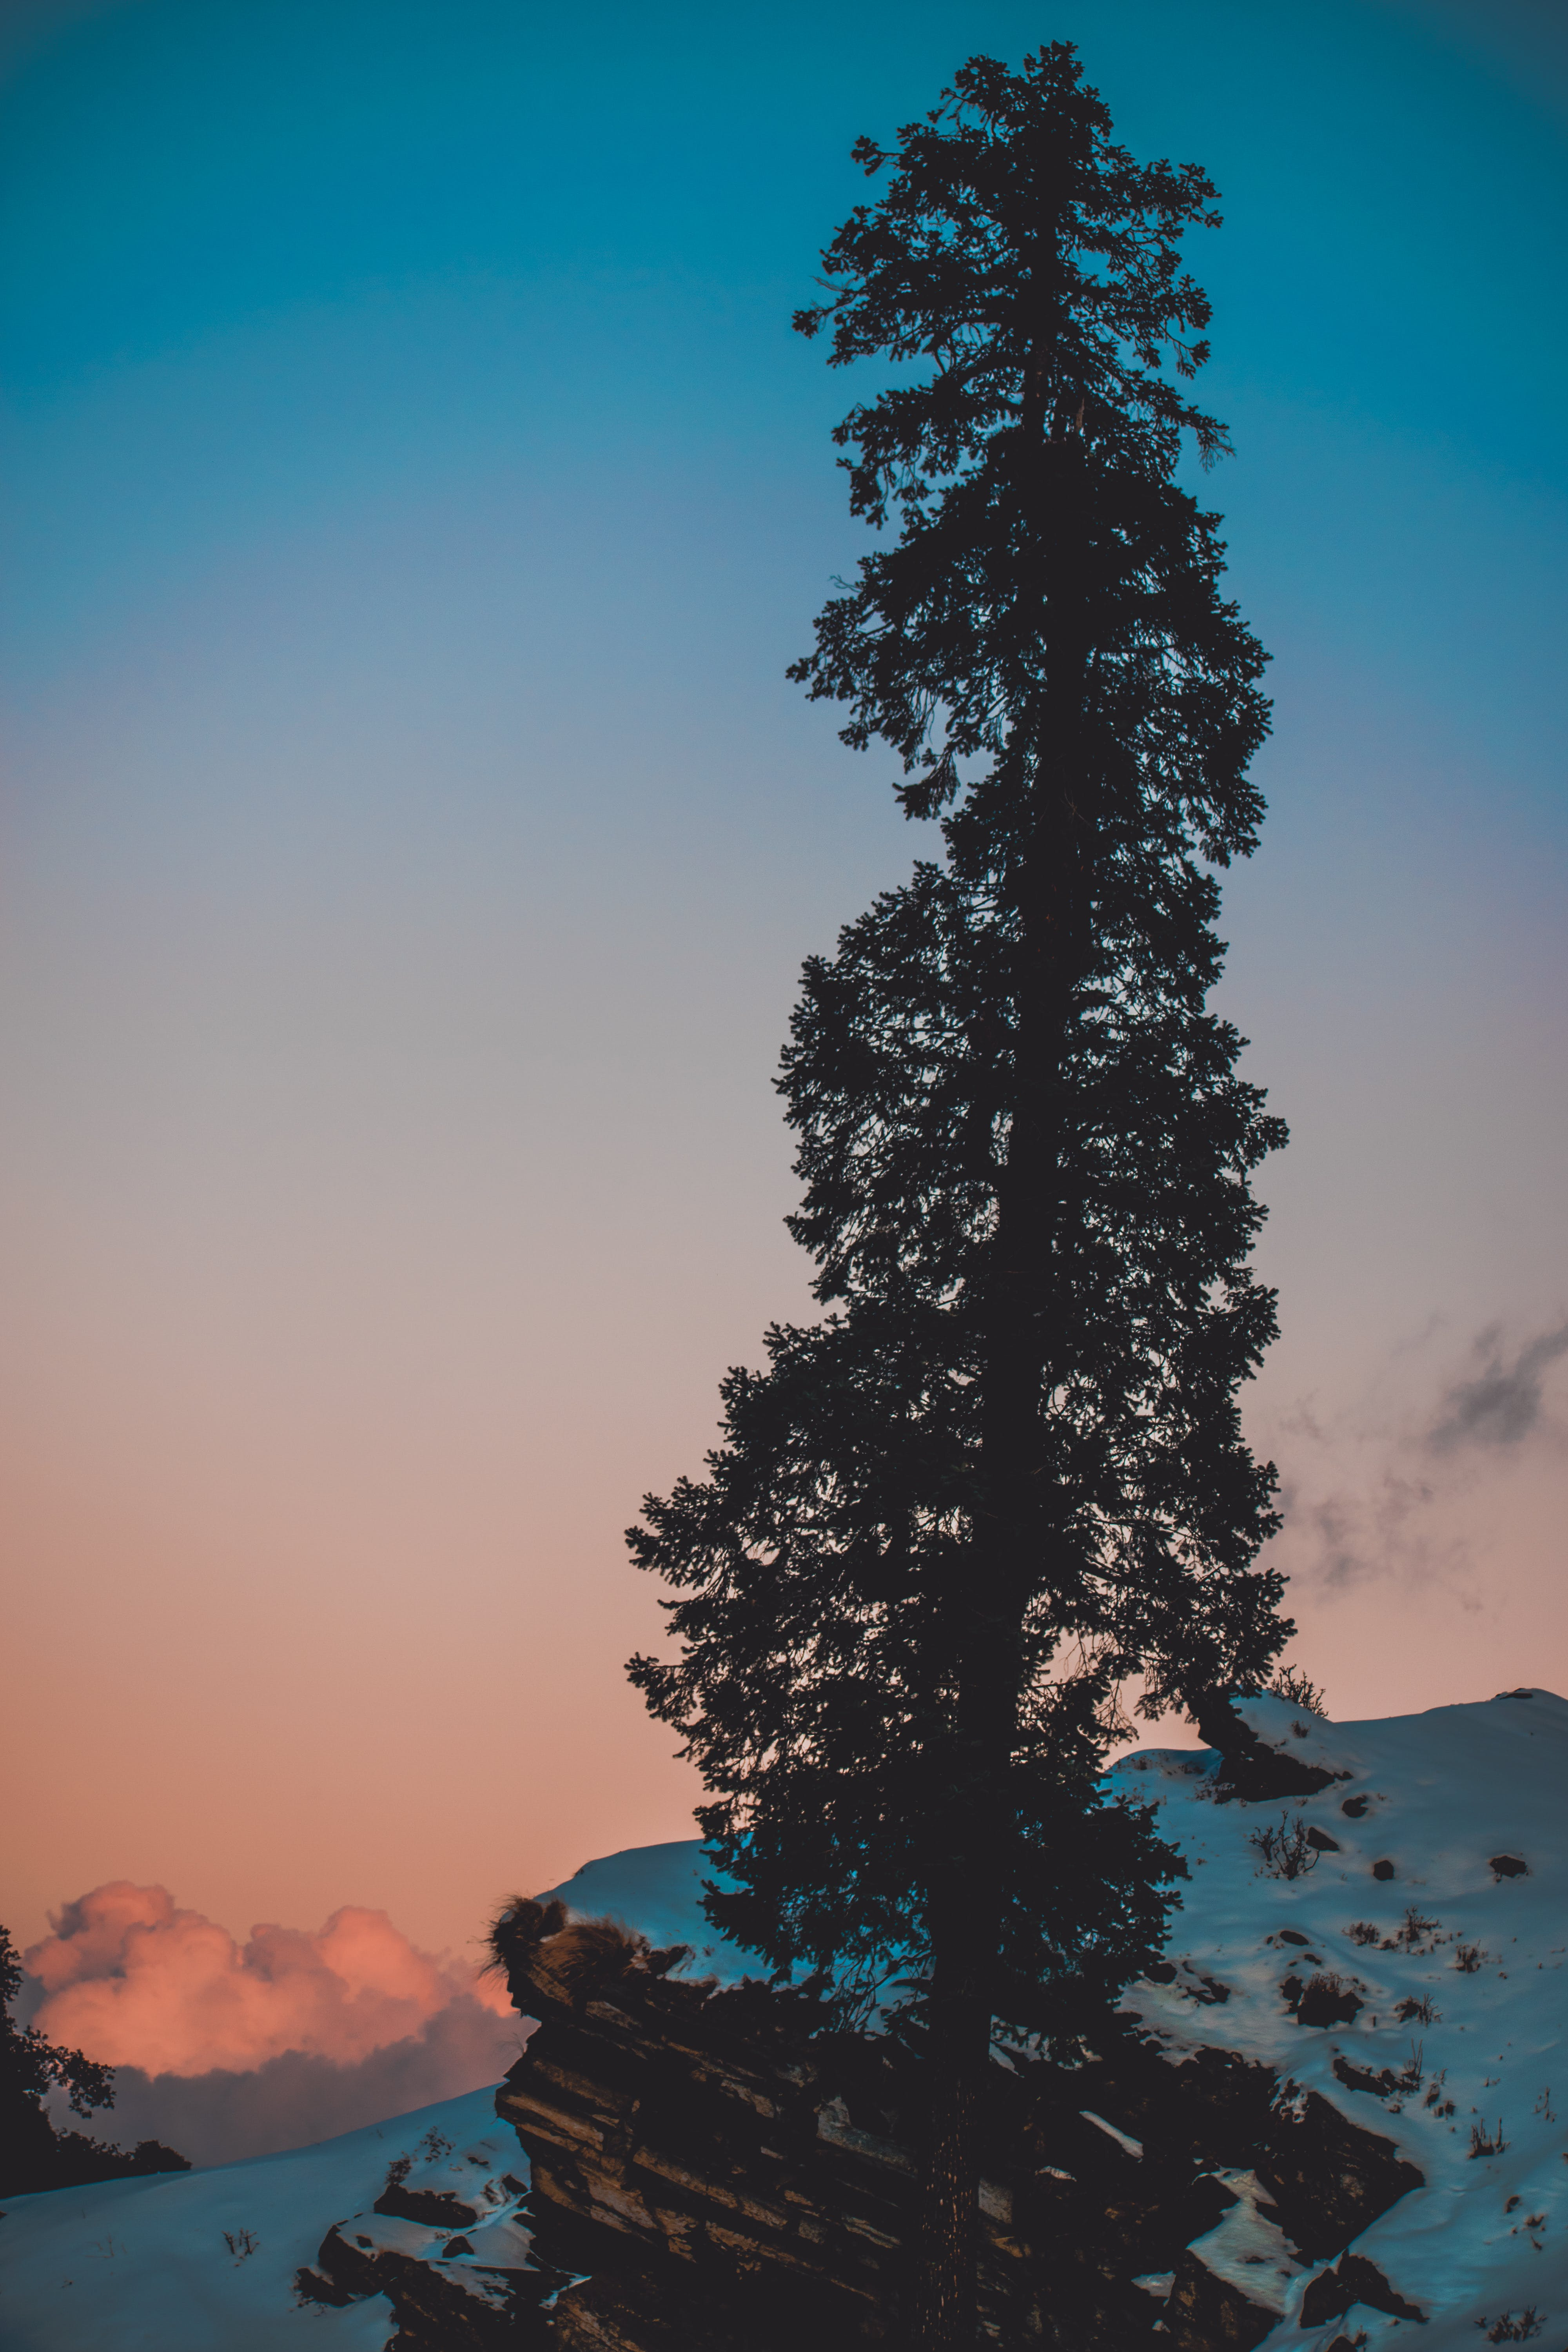 Pine Tree on Snow Covered Hill Under White and Blue Sky at Daytime